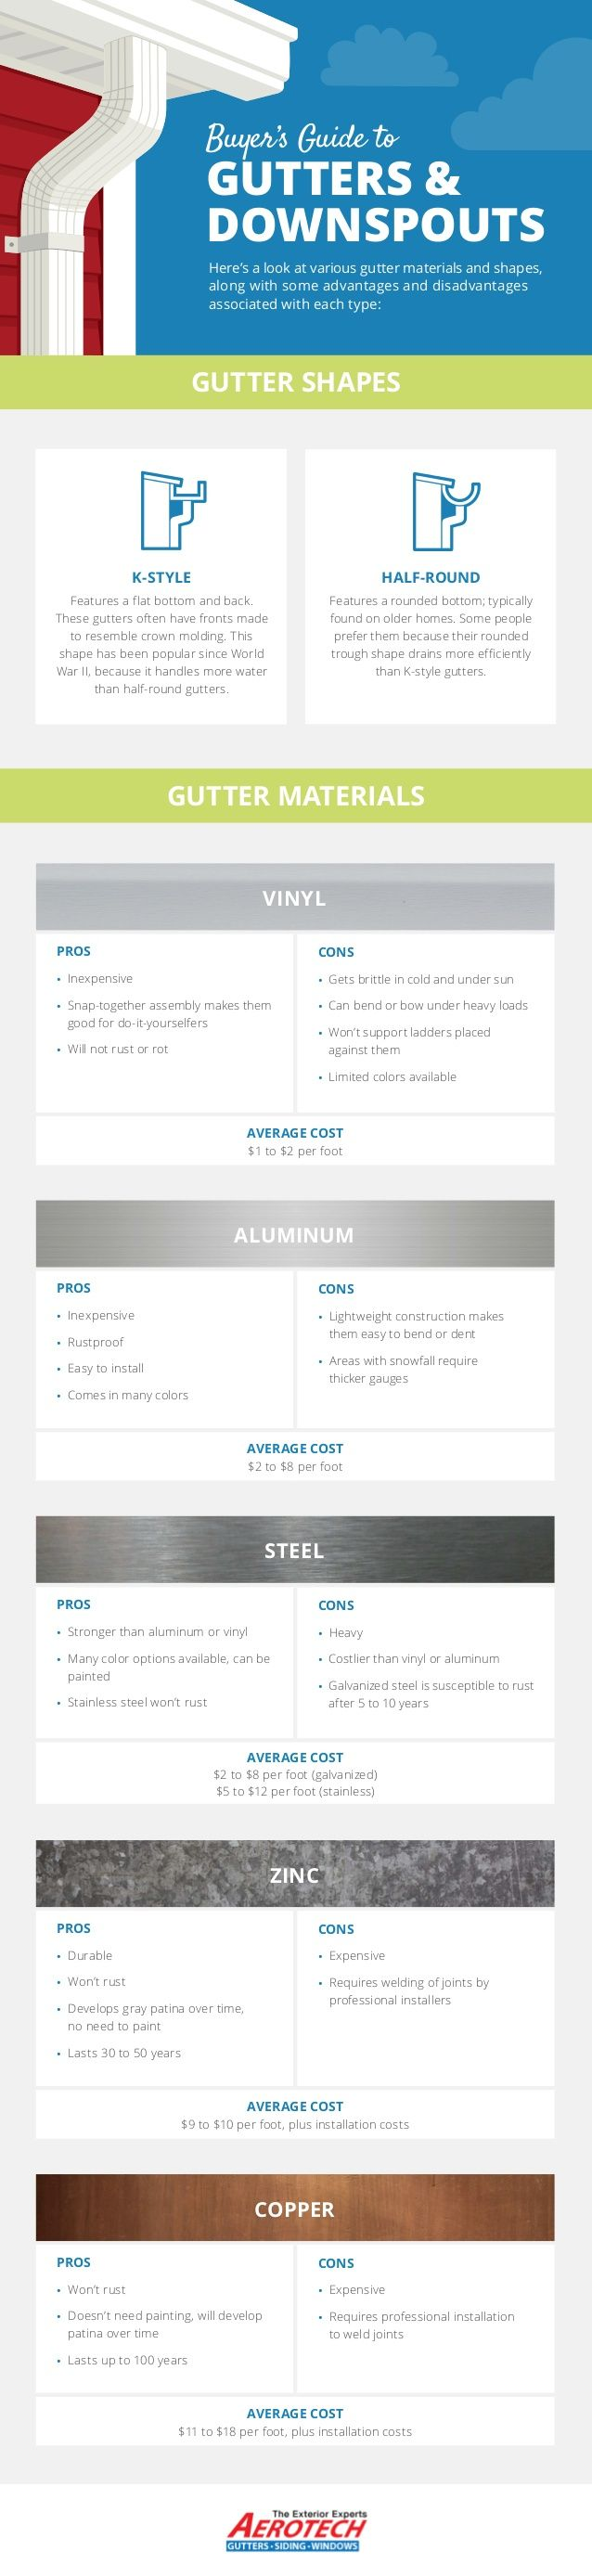 Pin By Sean Lintow Sr On Infographics Gutters Downspout Buyers Guide